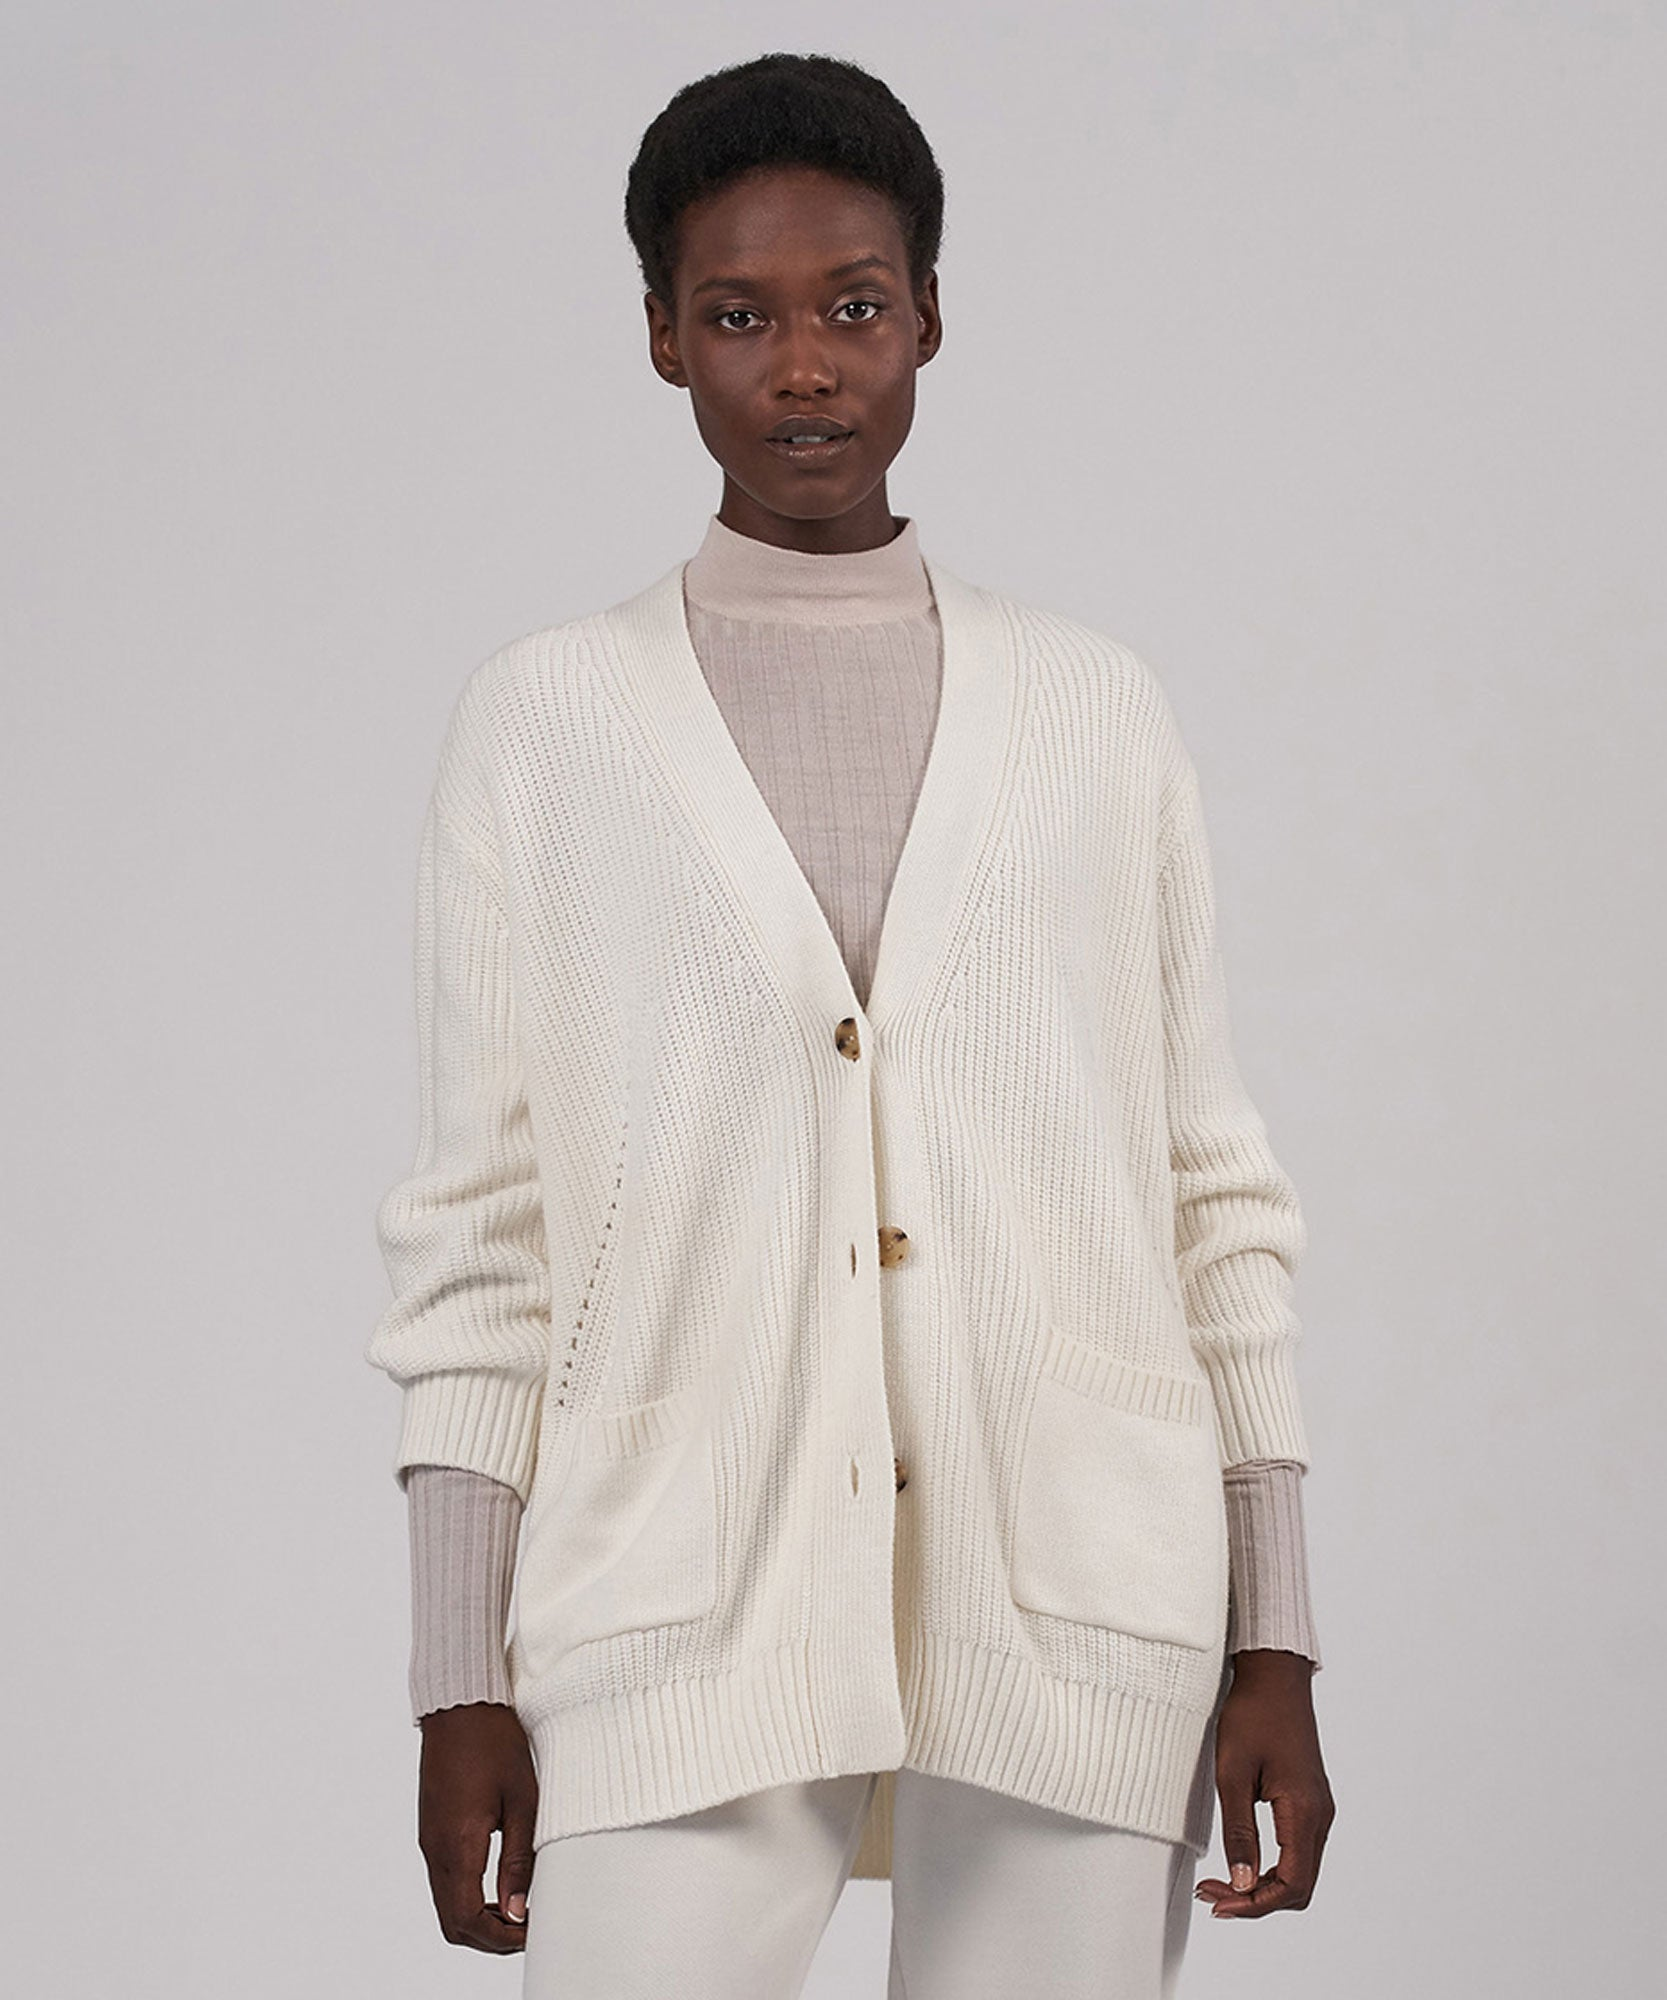 Cream Cashmere Blend Cardigan Coat - Women's Sweater by ATM Anthony Thomas Melillo